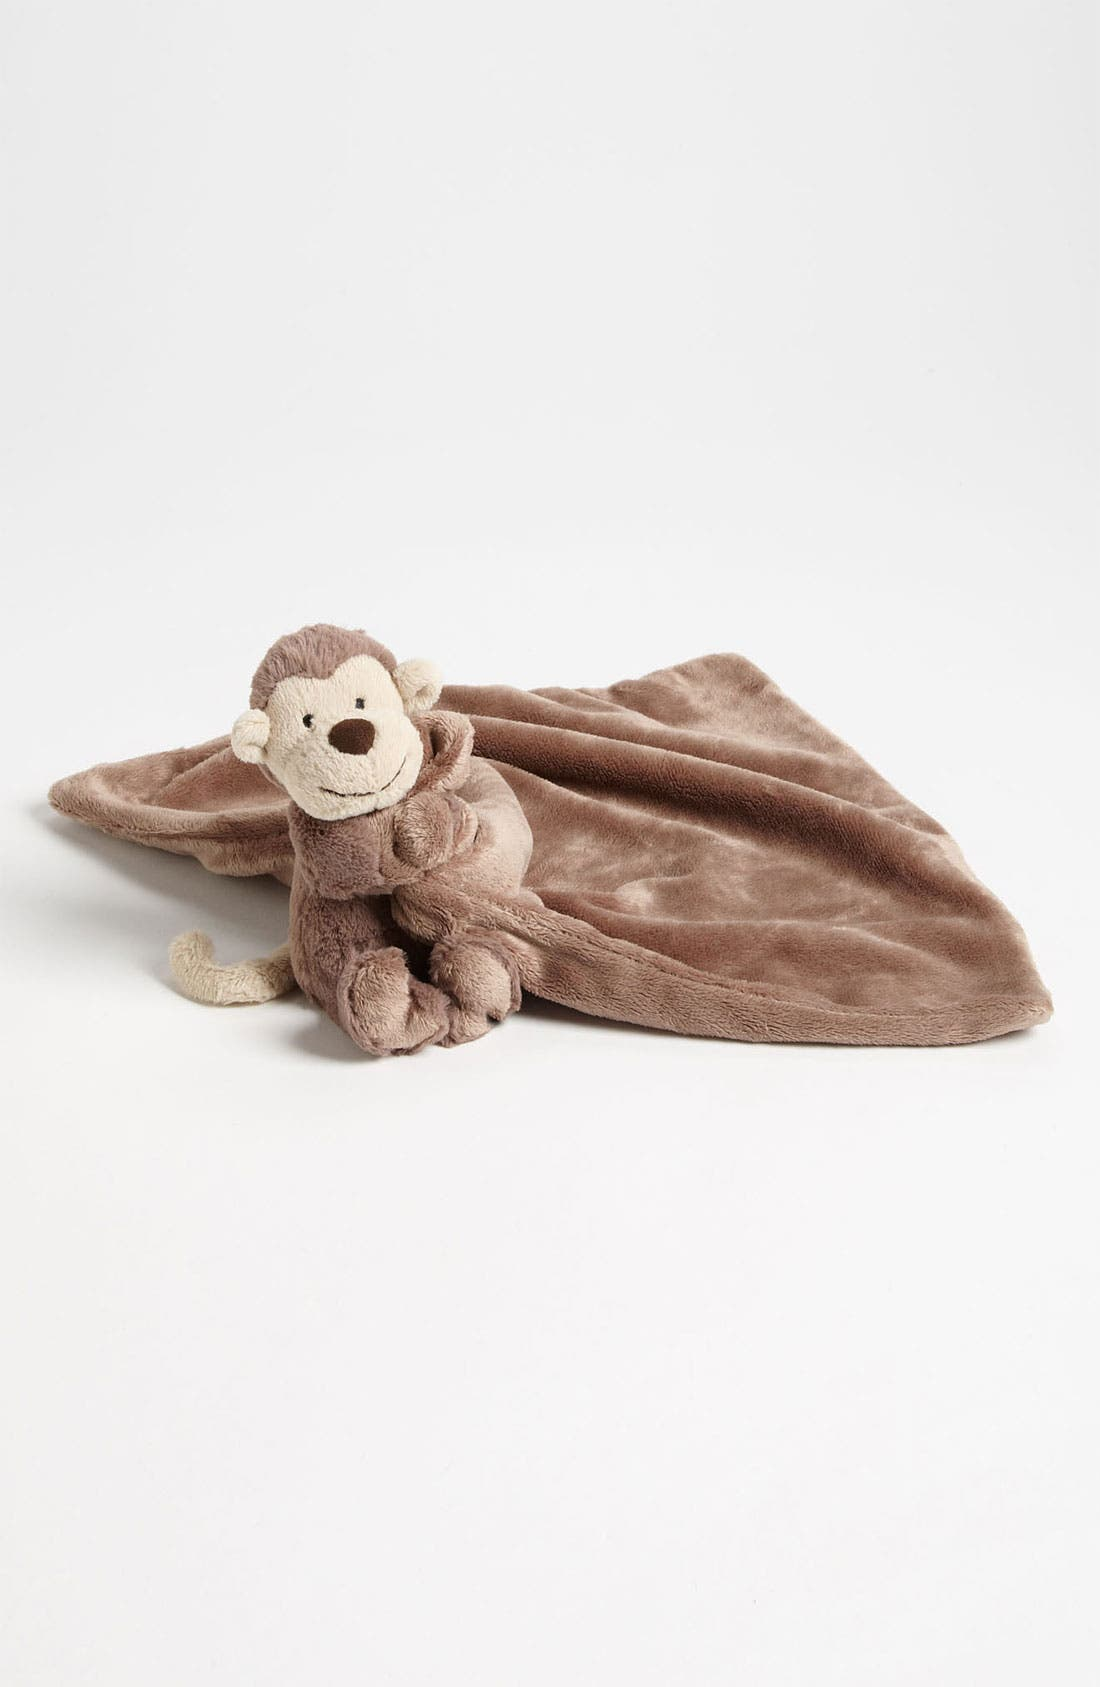 Jellycat 'Bashful Monkey Soother' Stuffed Animal & Blanket